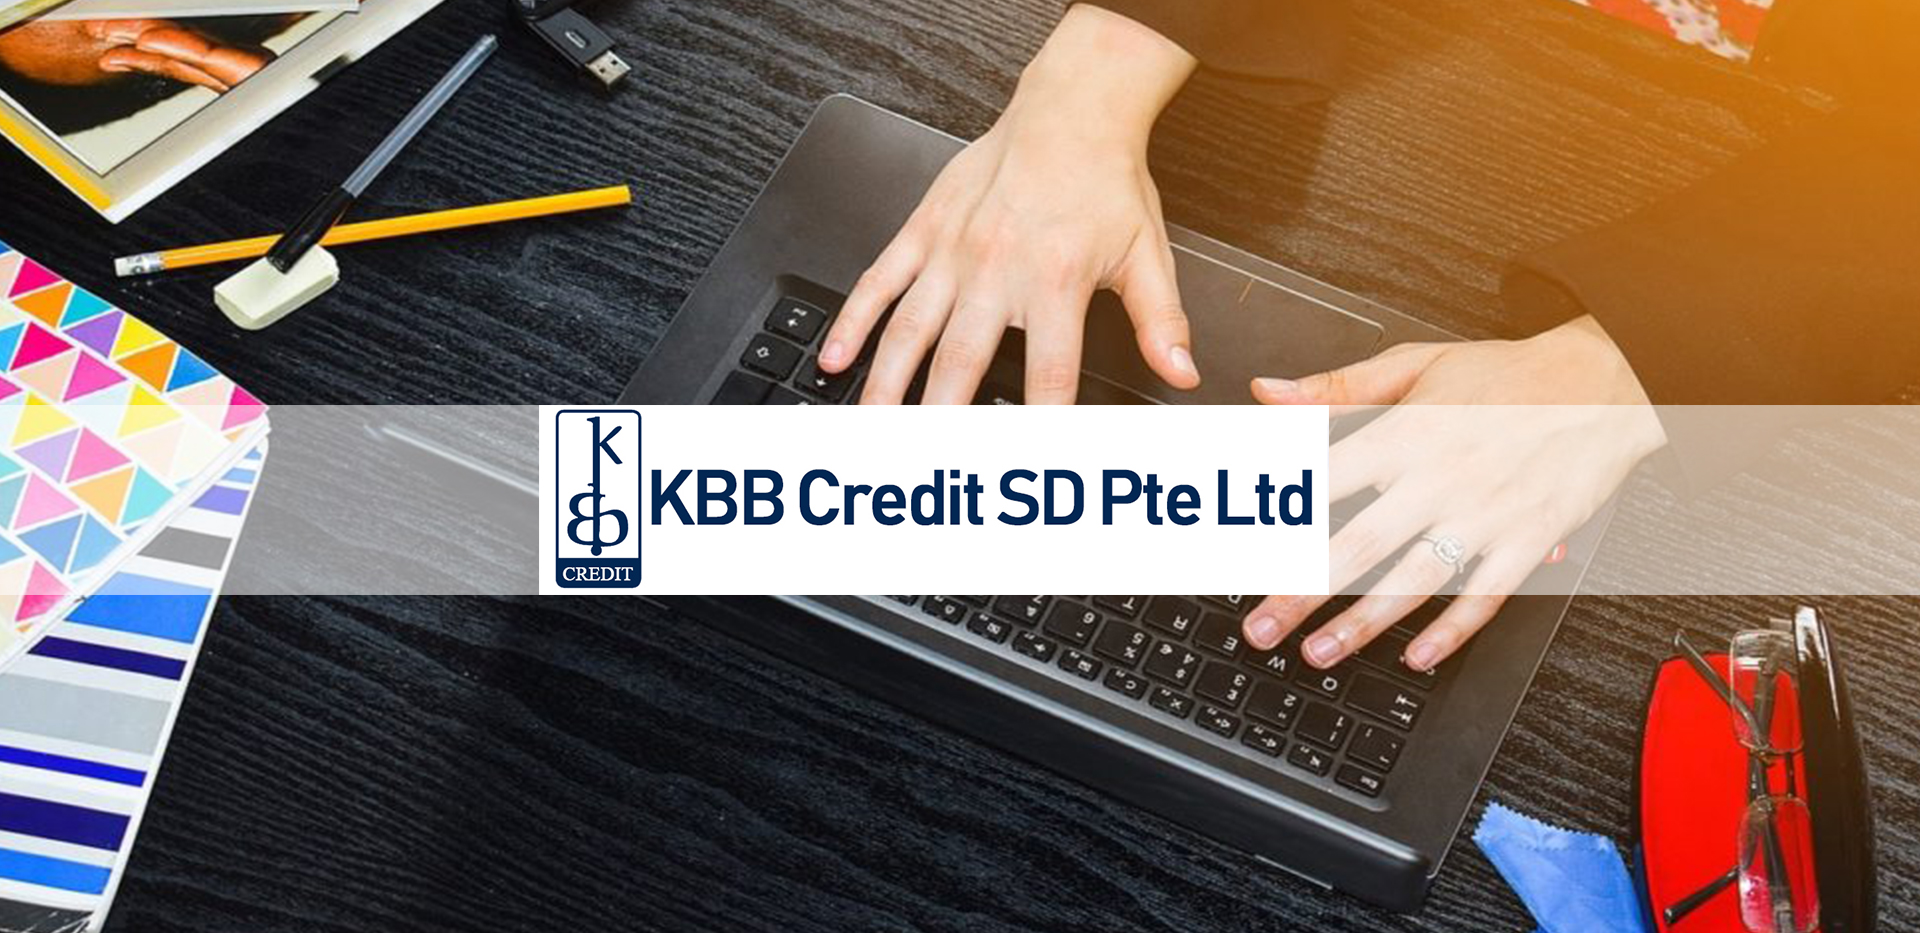 KBB Credit licensed moneylender